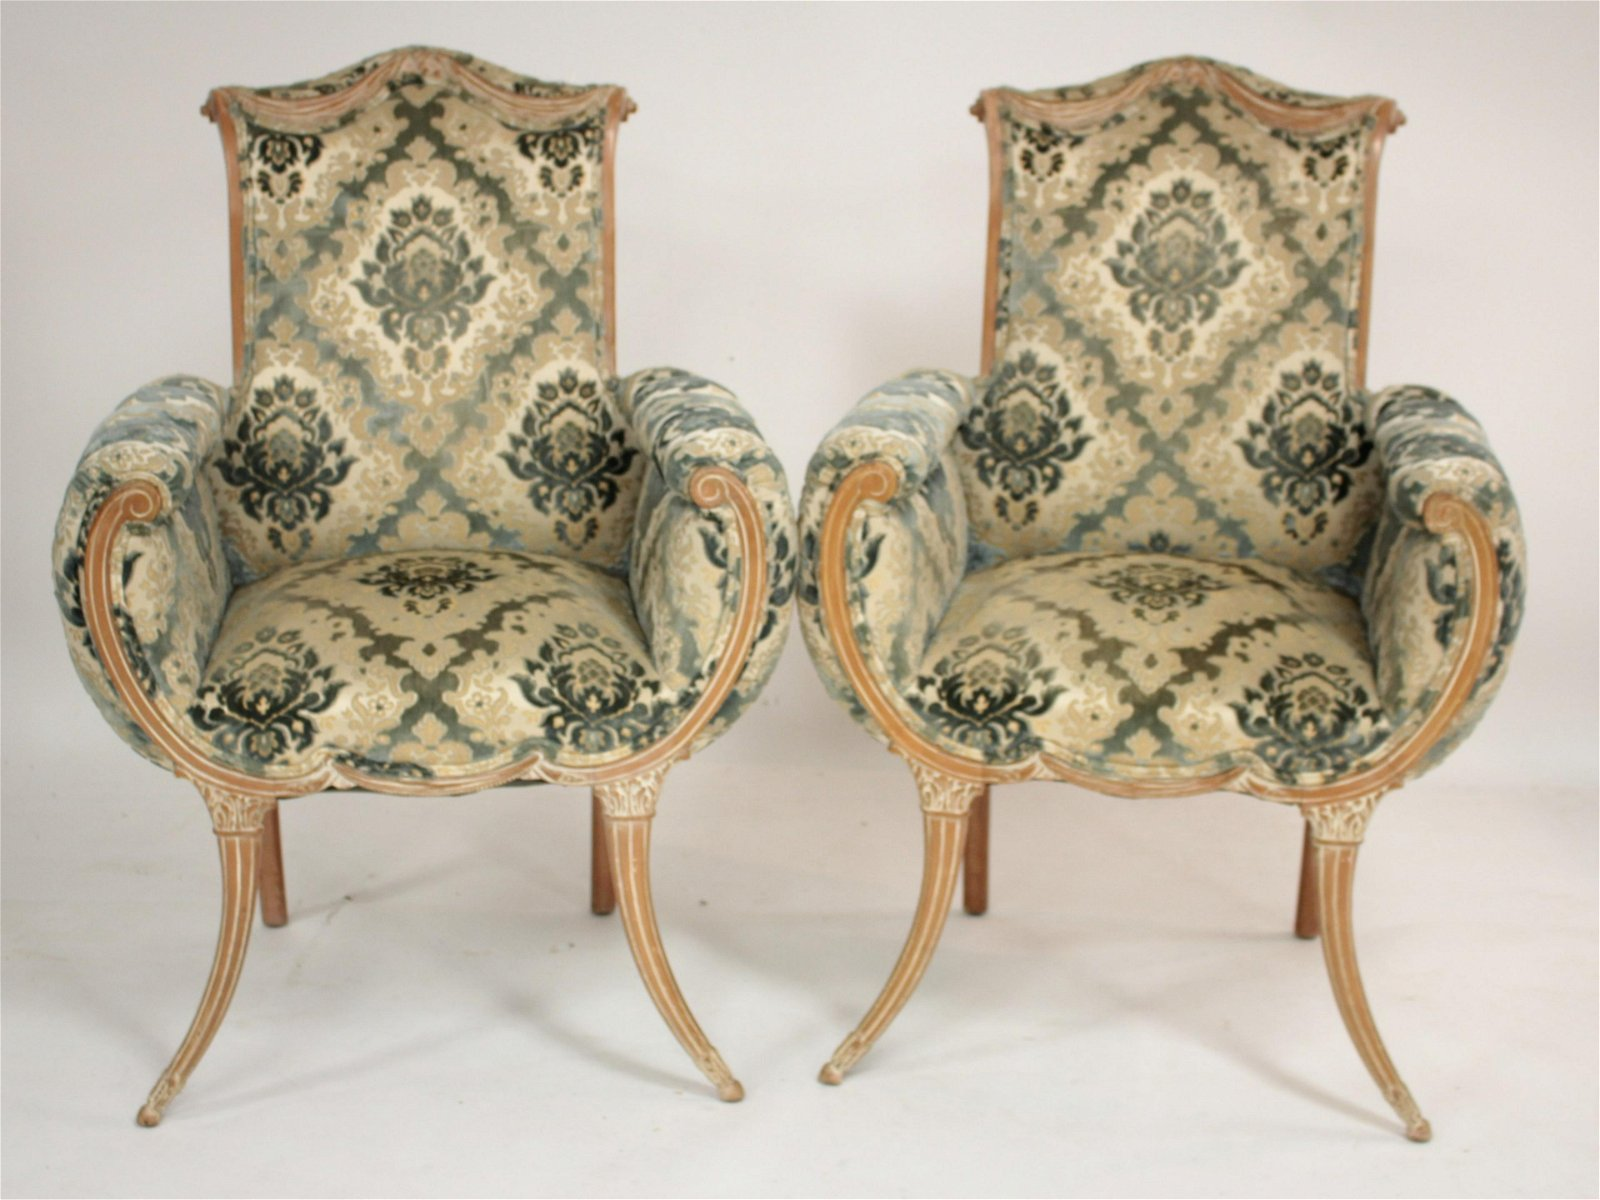 Pr of Hollywood Regency Style Fireside Chairs